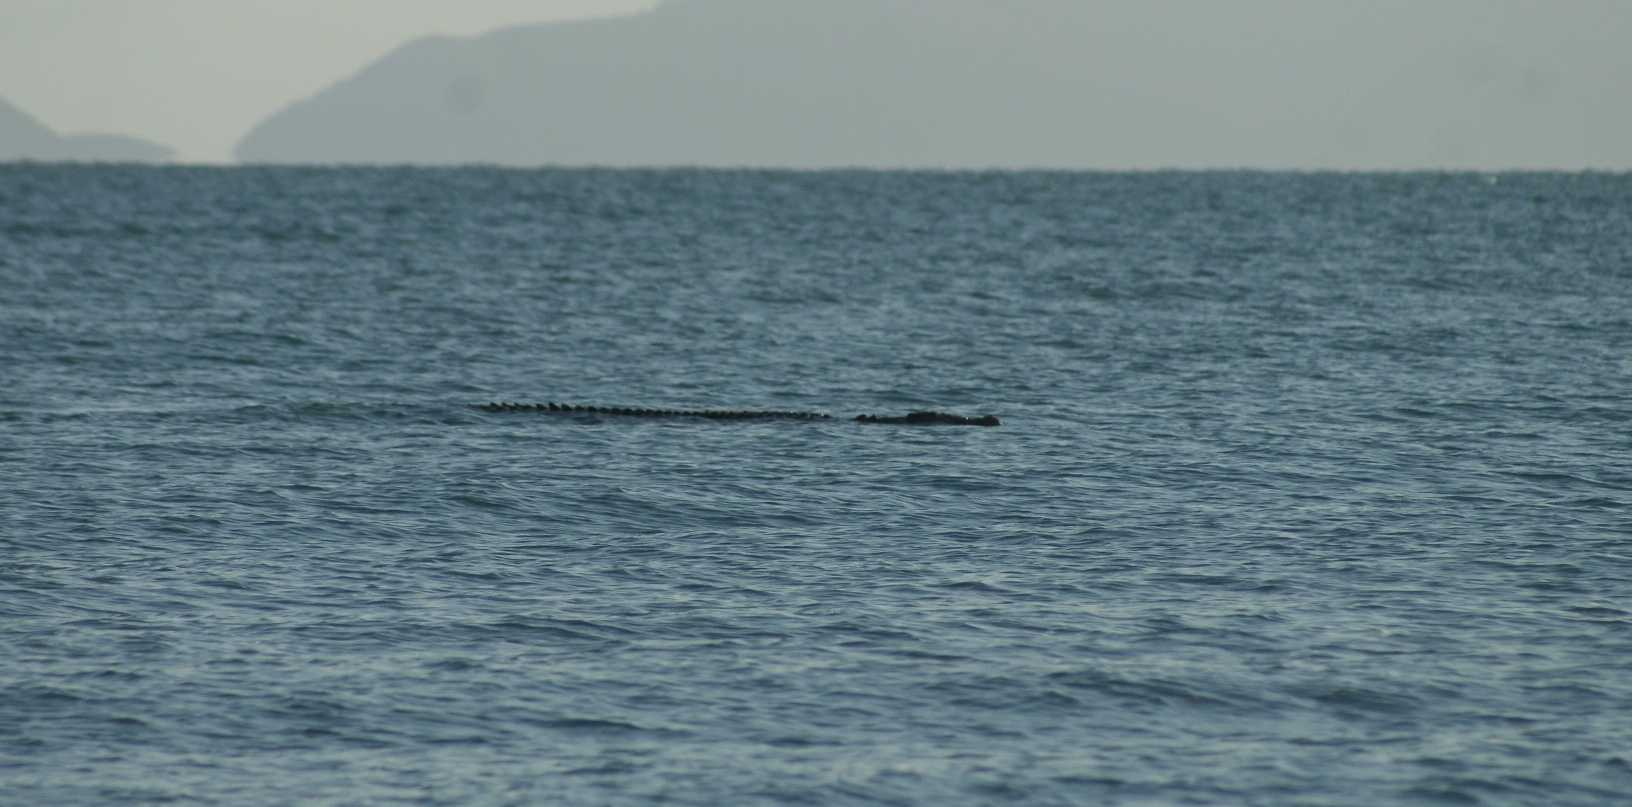 The crocodile spotted from Blacks Beach.